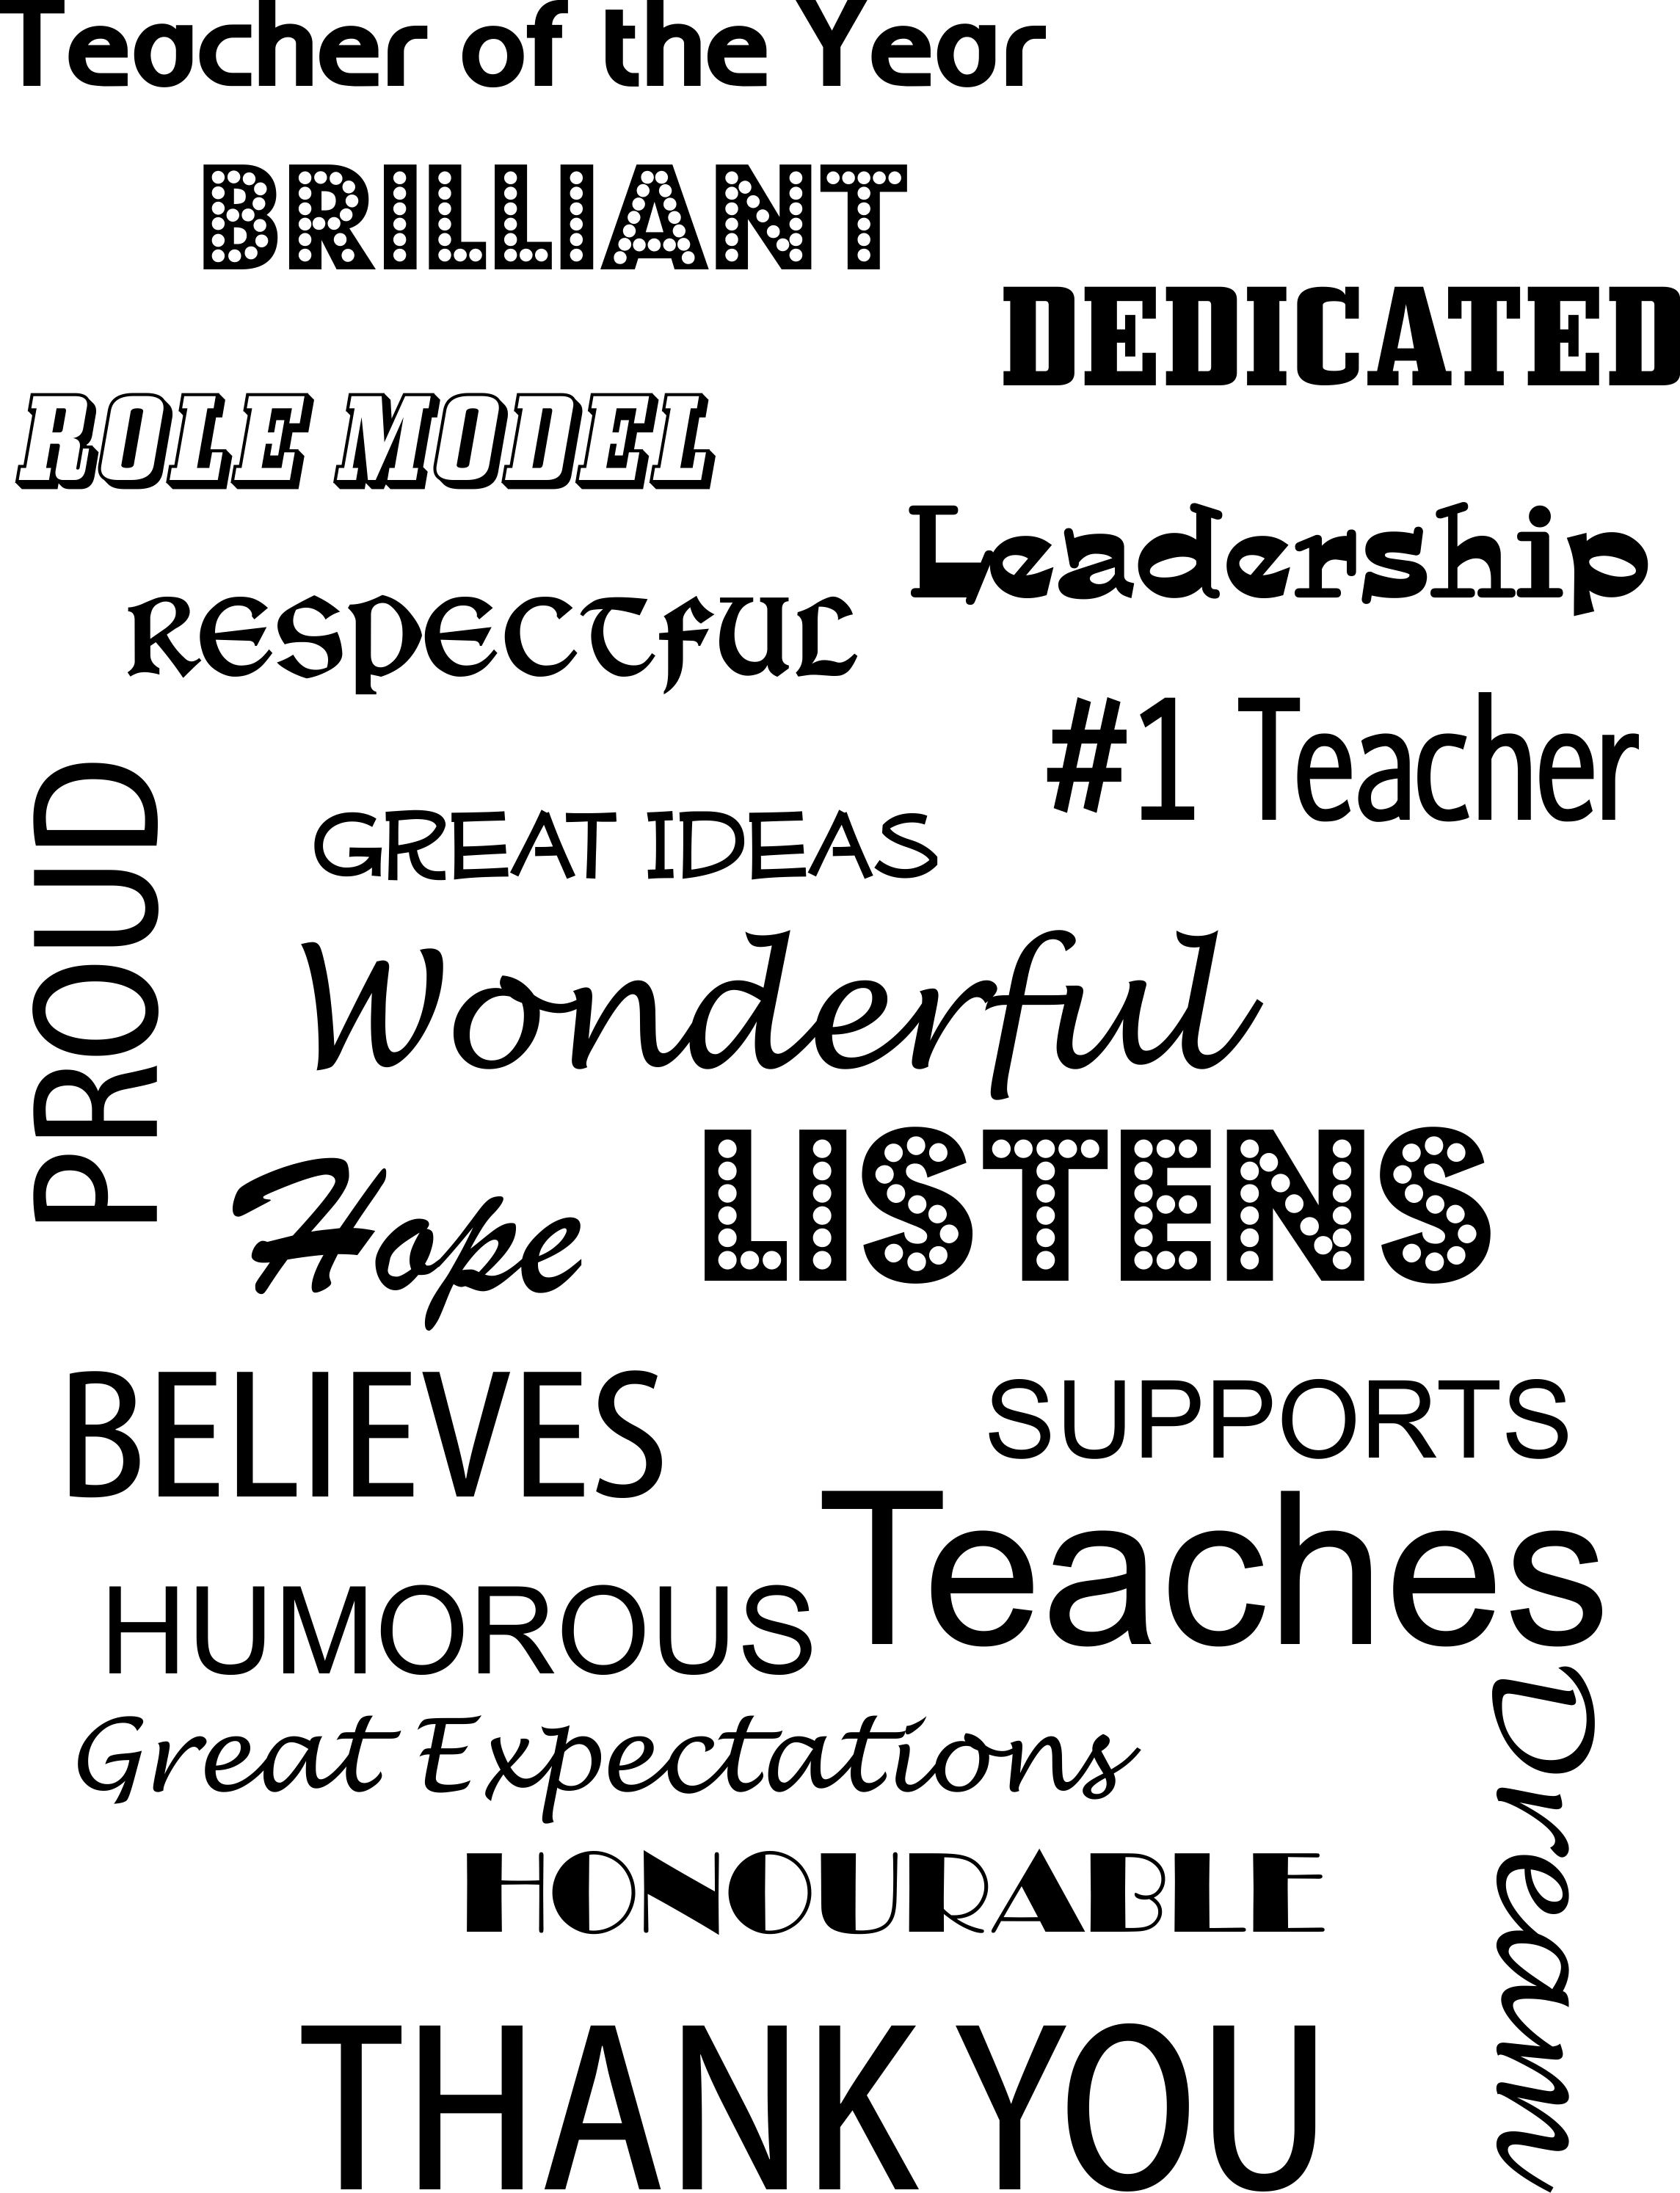 #Teacher of the Year Message to place in a Frame for your